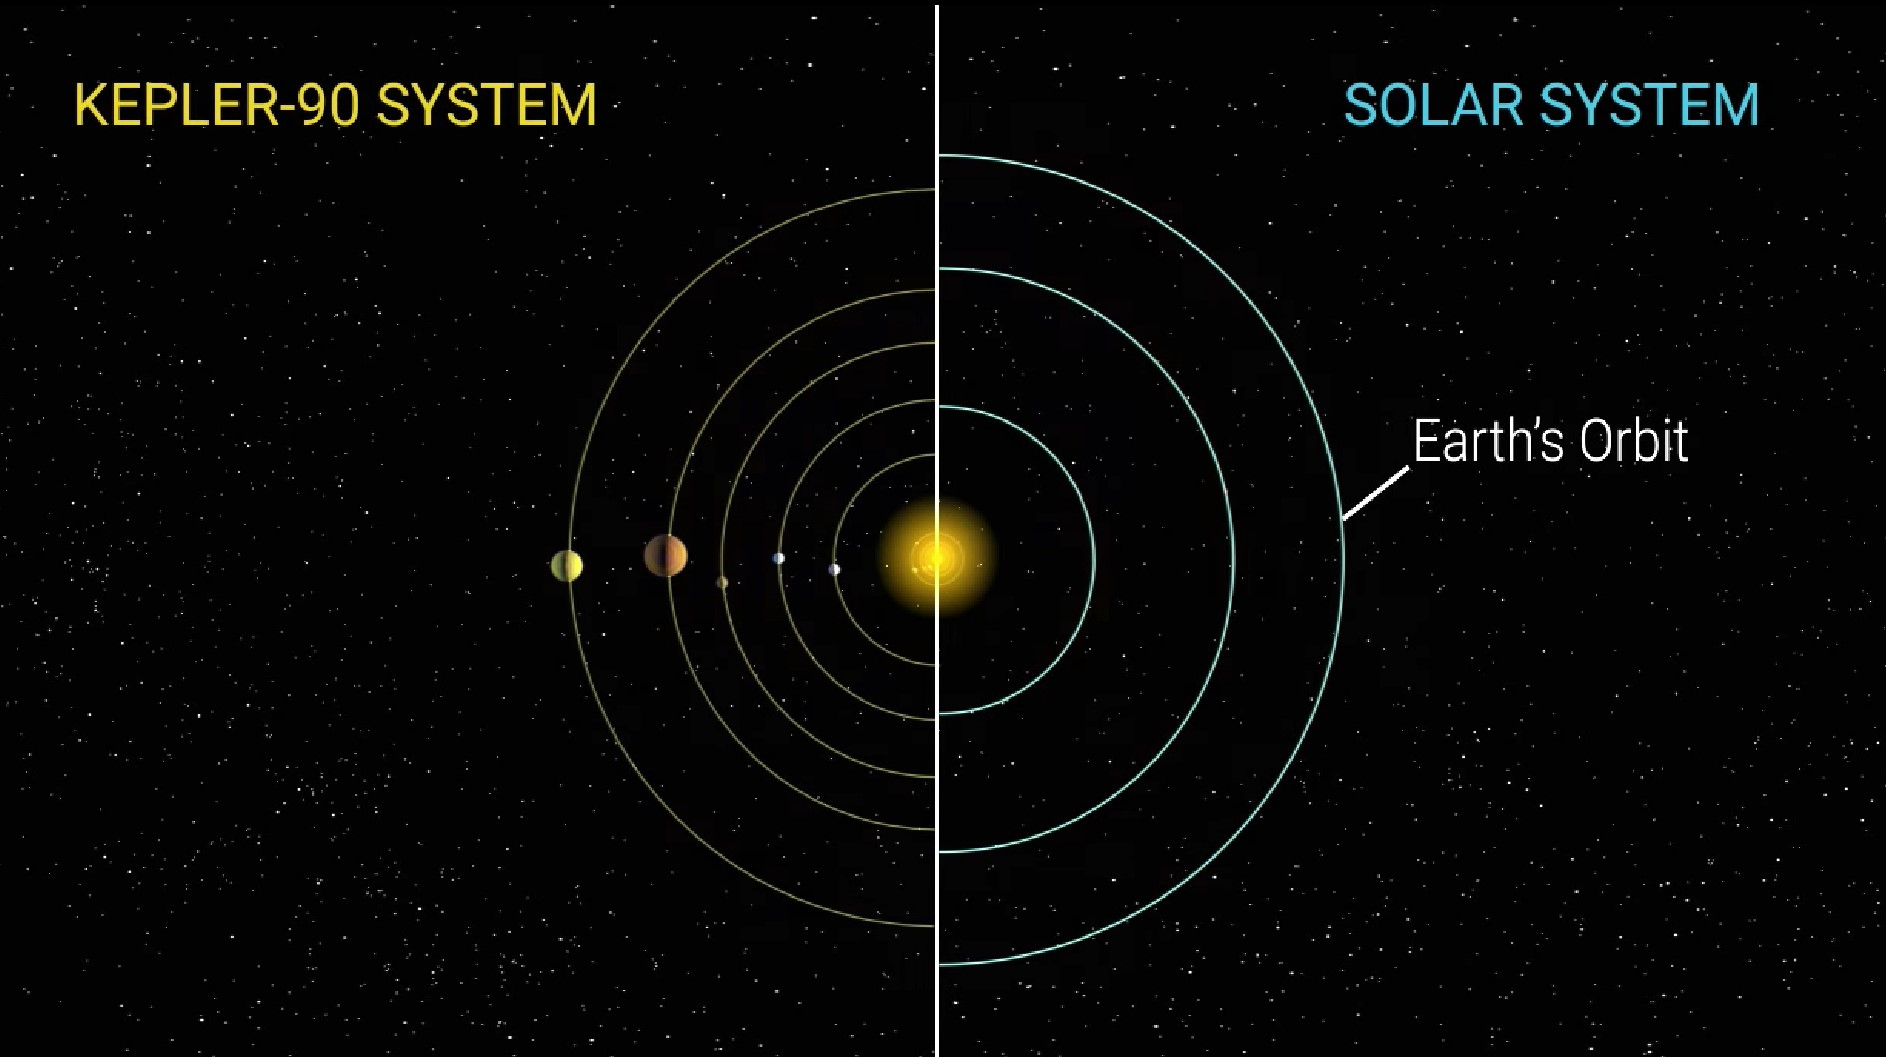 Two new planets orbiting distant suns